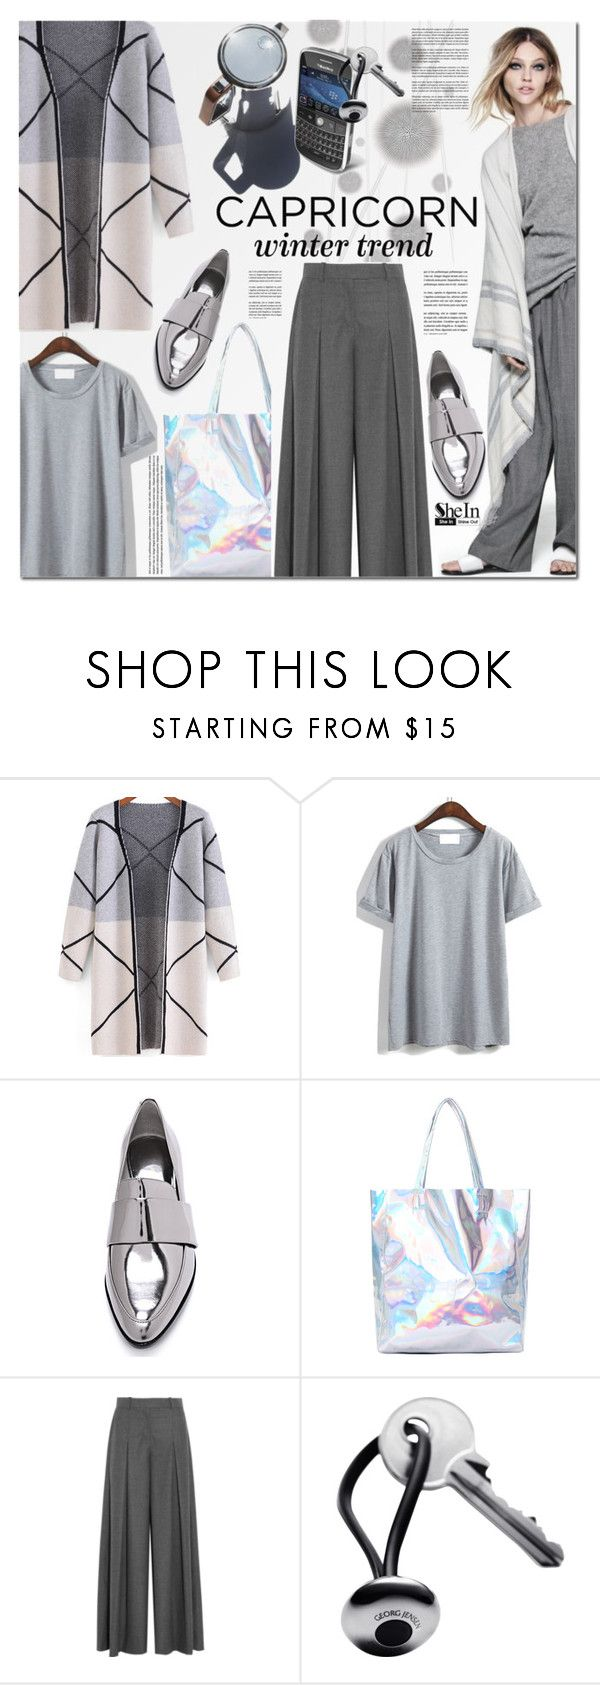 """What's Your Fashion Horoscope?"" by barbarela11 ❤ liked on Polyvore featuring Komar, Garance Doré, 3.1 Phillip Lim, J.Crew and Georg Jensen"